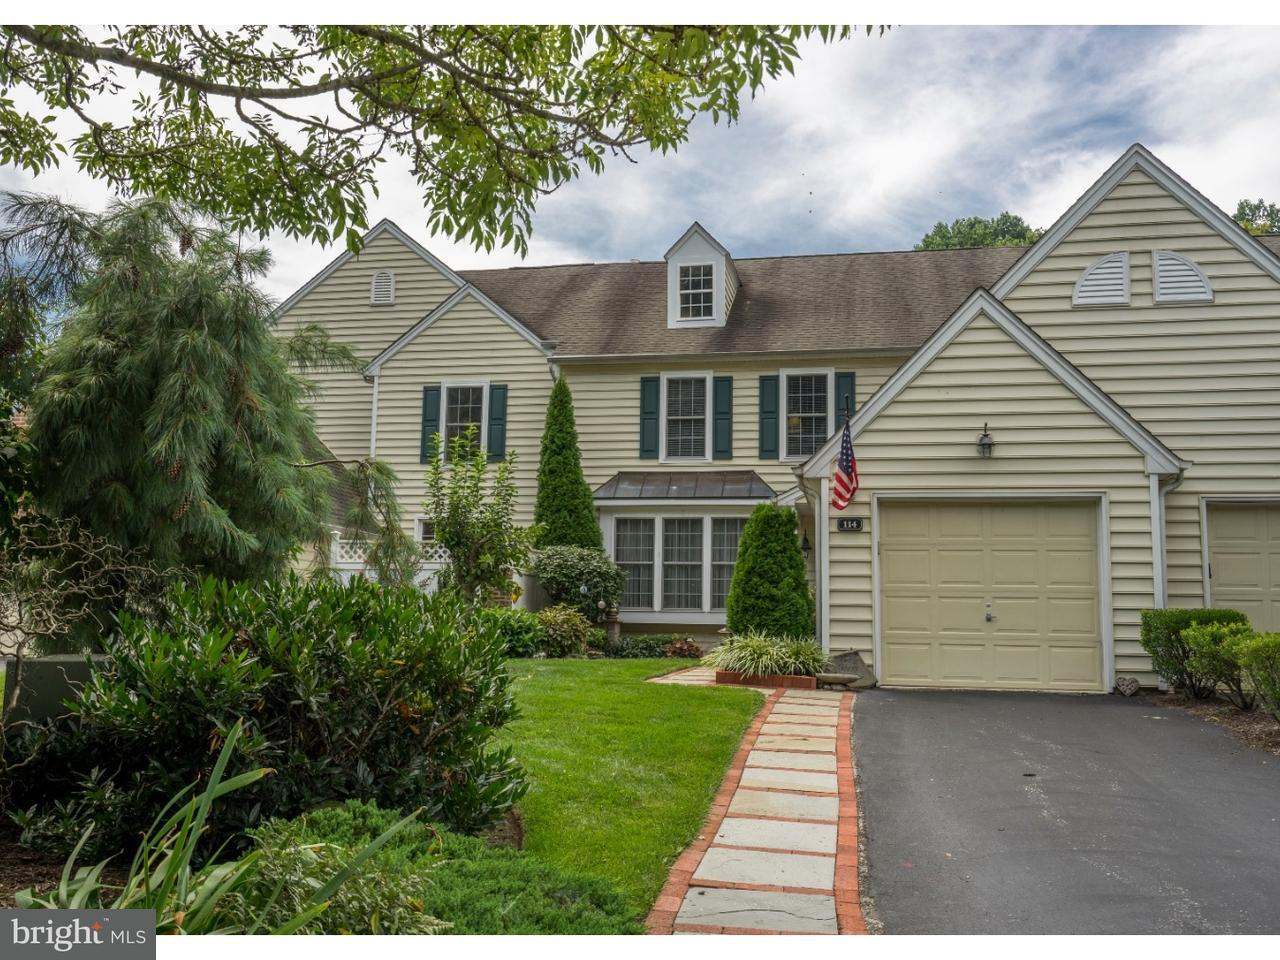 Townhouse for Sale at 114 DUNDEE MILLS Lane Rose Valley, Pennsylvania 19086 United States